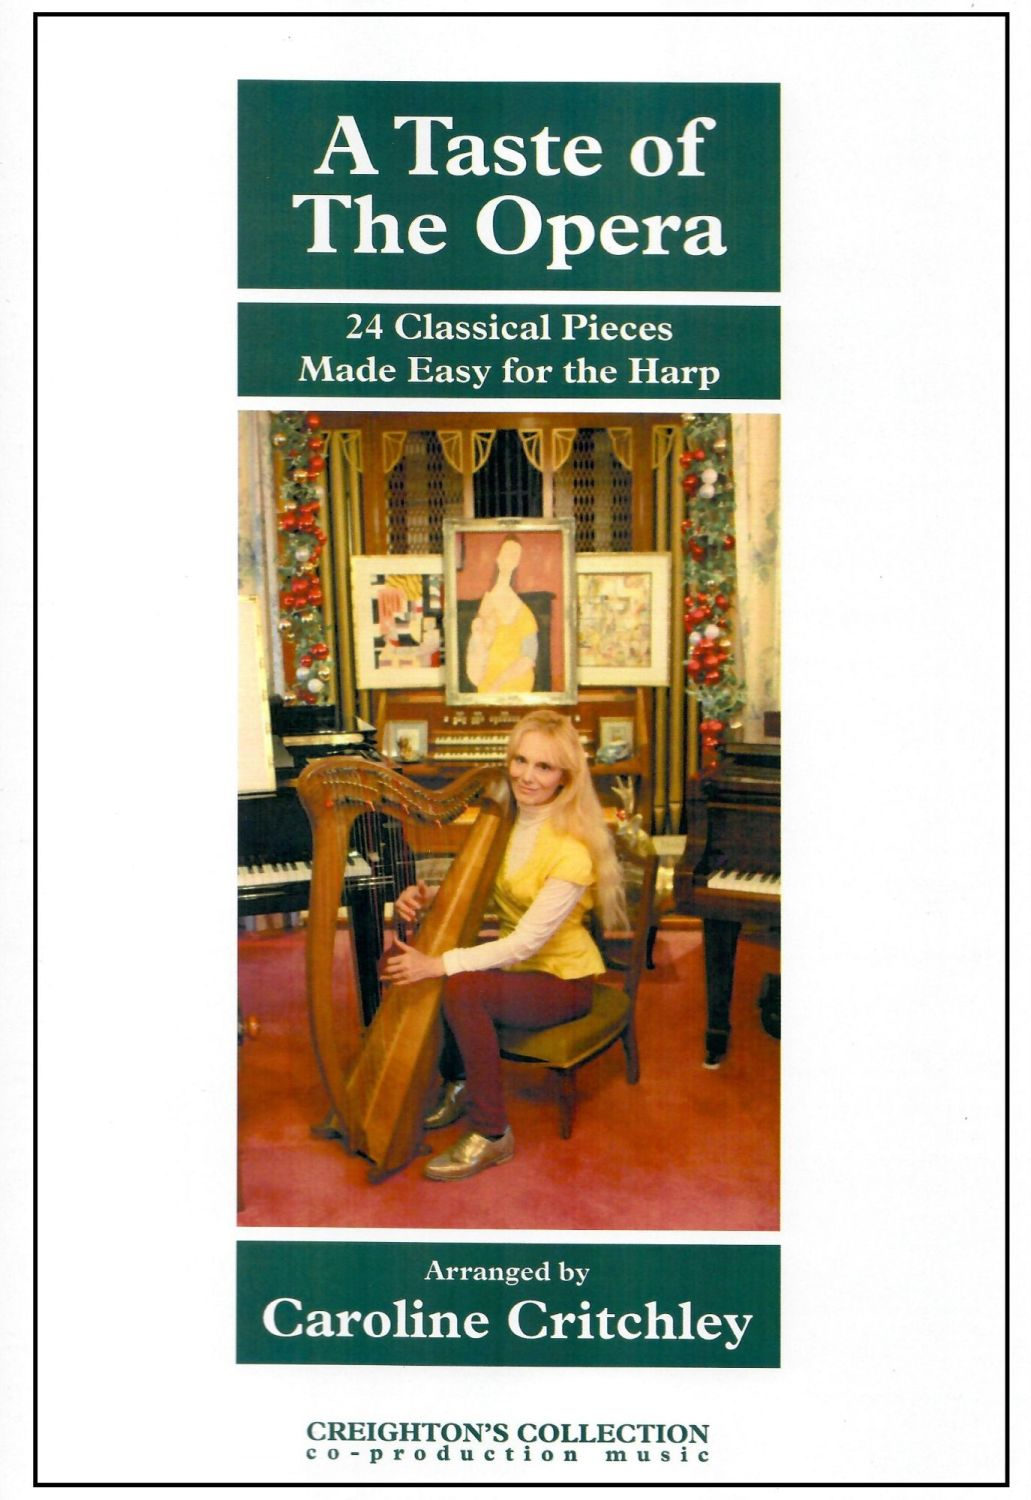 A Taste of the Opera - Caroline Critchley